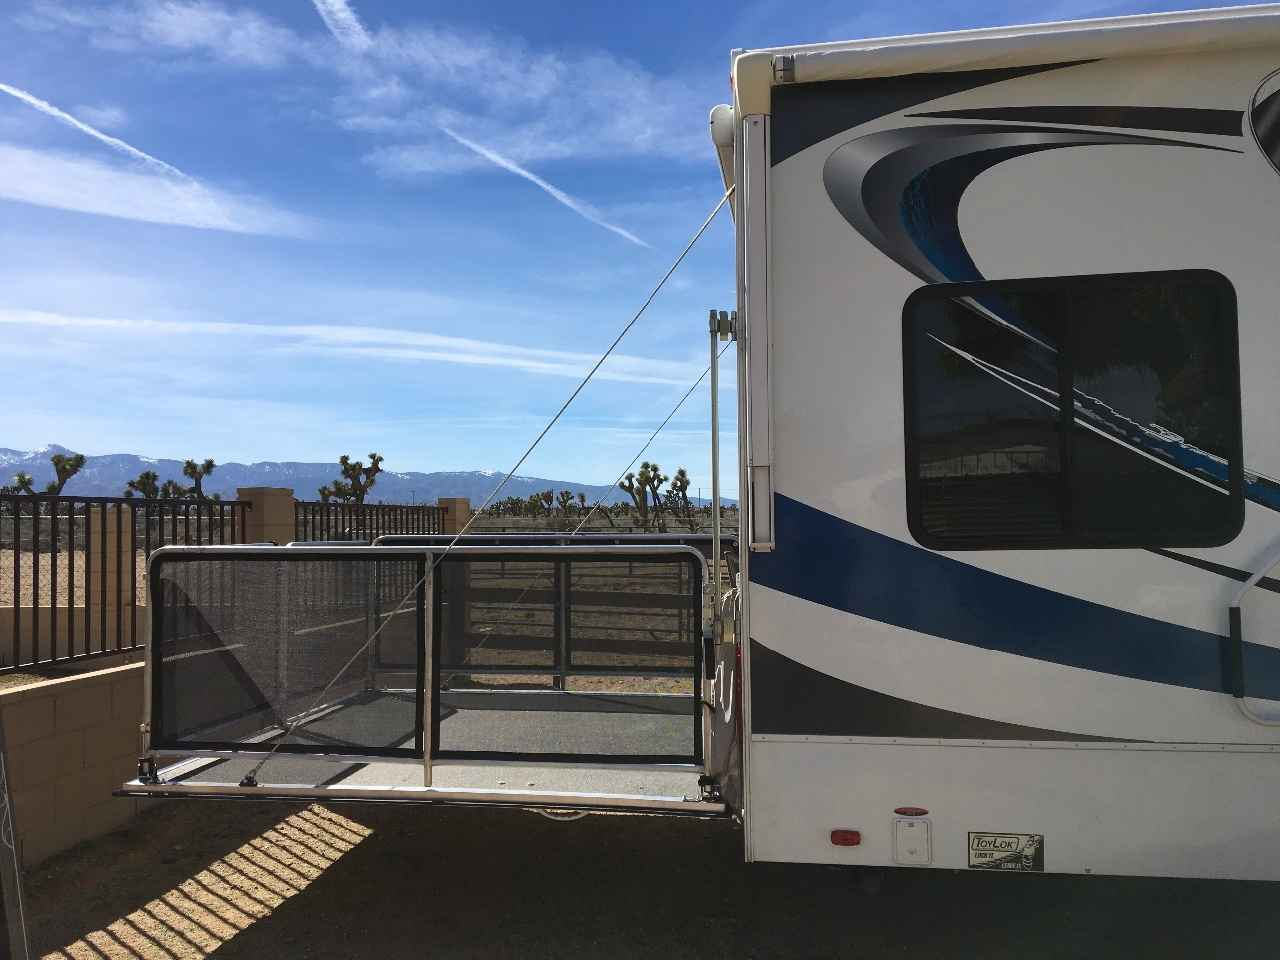 Dump truck likewise 8 Keys To Choosing The Right Rv Floor Plan The First Time And 1 Area That Matters Less Than You Might Think together with Weekend Warrior Fsc3200 furthermore Brand New 2014 Weekender 130 Travel Trailer Shorty 10950 26636237 as well Thor Avanti 2806. on california used toy hauler